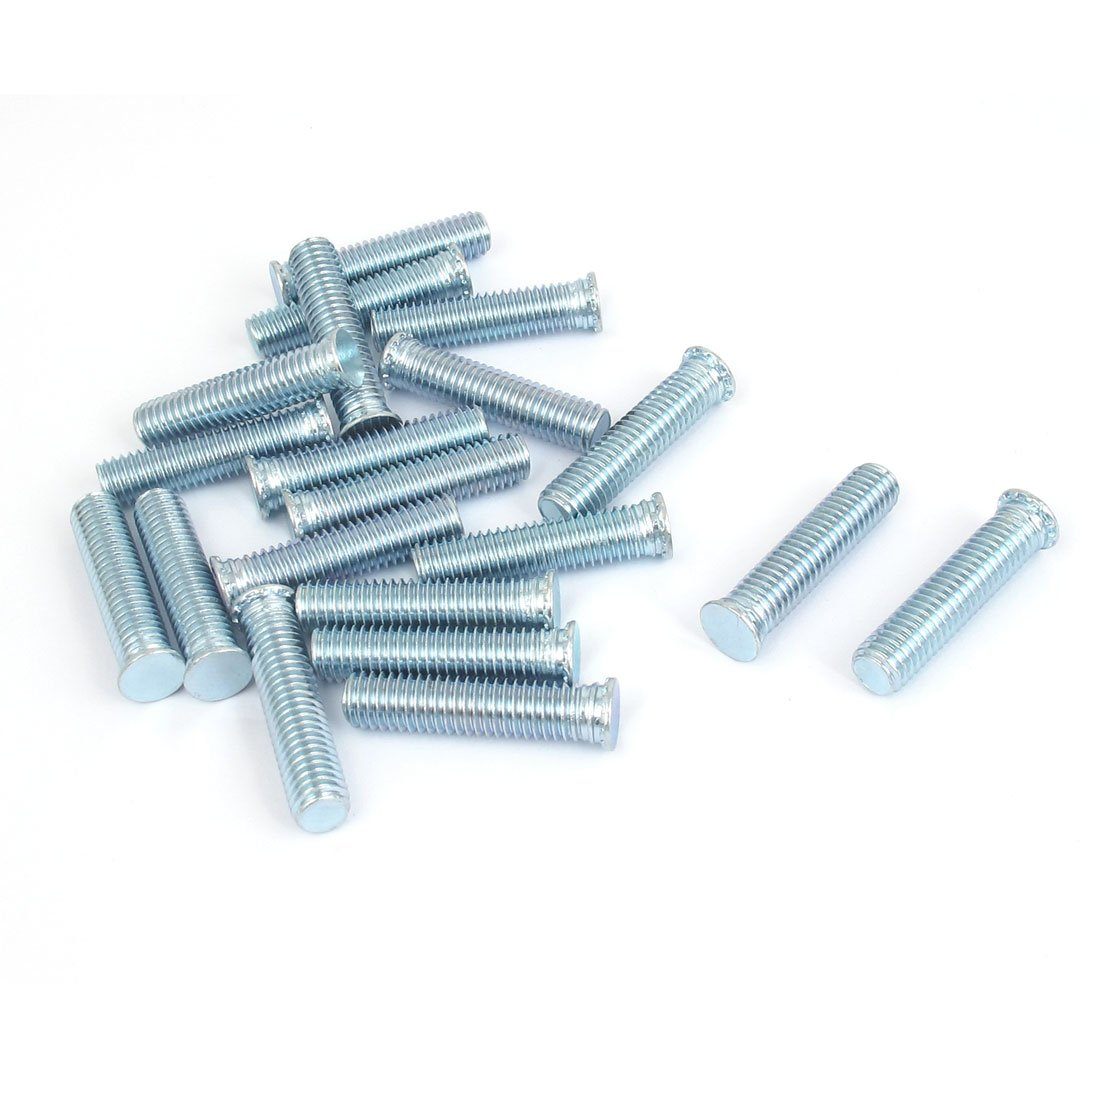 uxcell M8x35mm Zinc Plated Flush Head Self Clinching Threaded Studs 20pcs